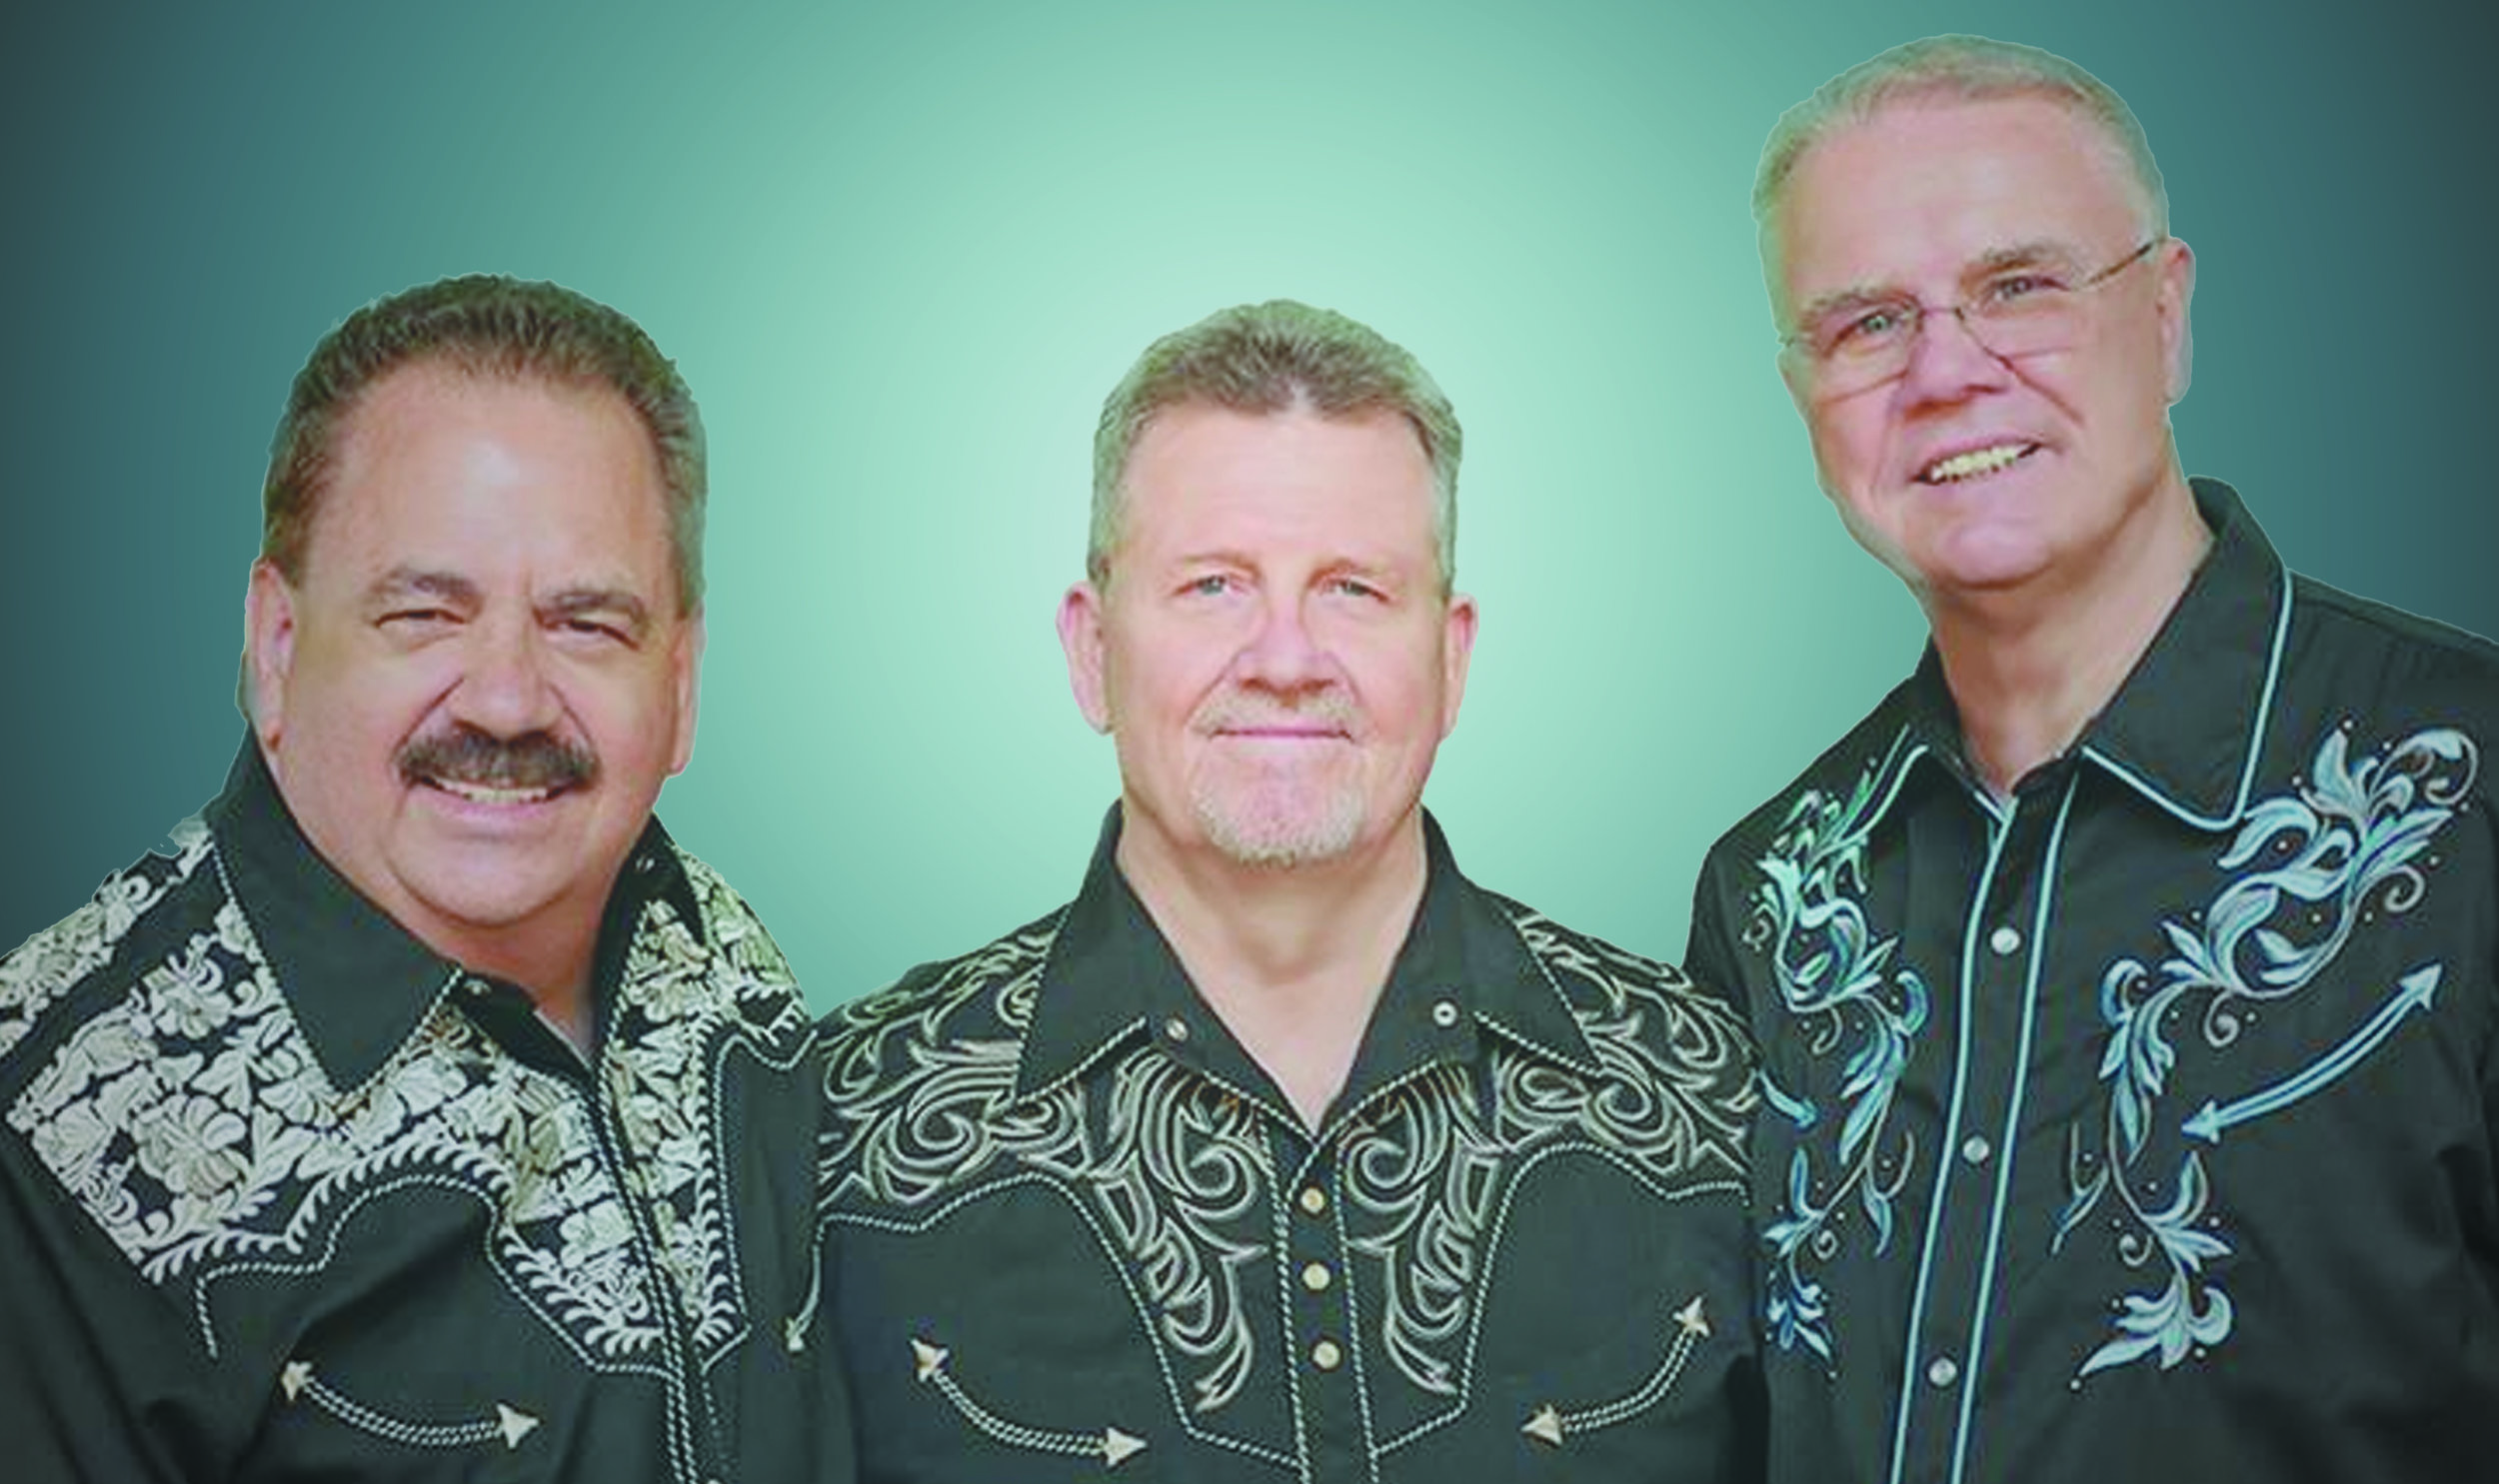 Johnny Minick & The Stewart Brothers -